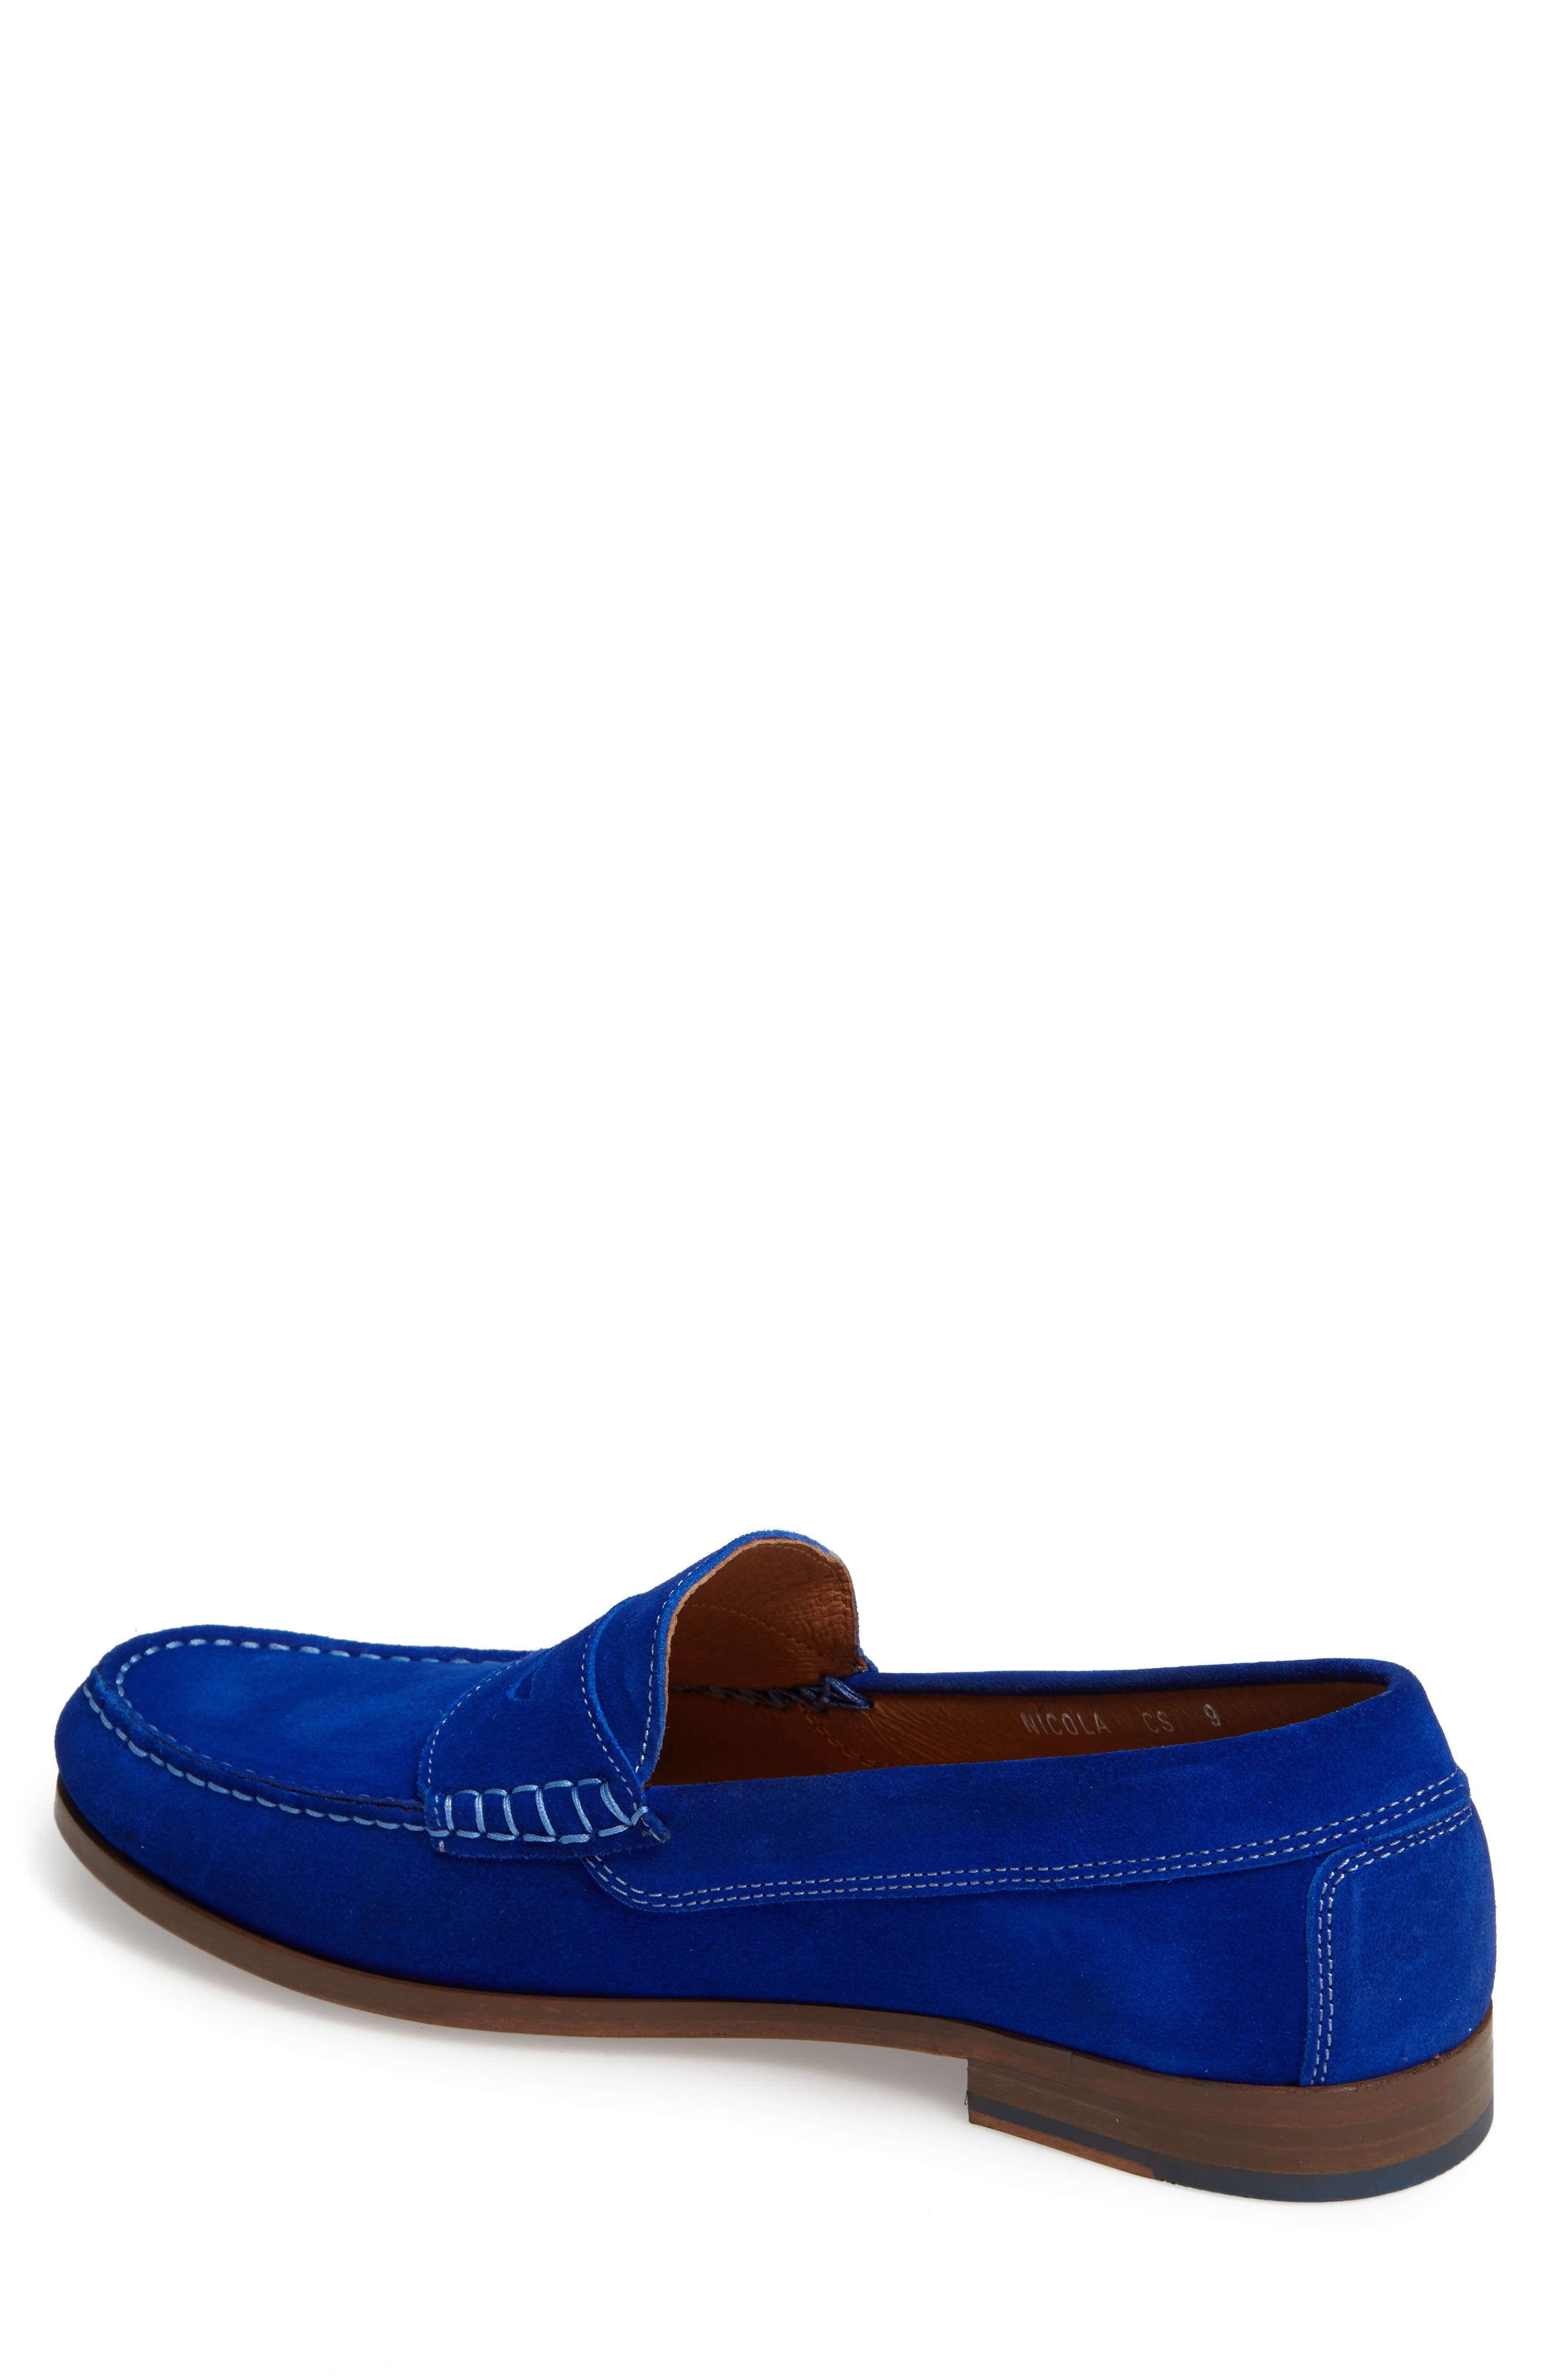 Nicola Penny Loafer,                             Alternate thumbnail 20, color,